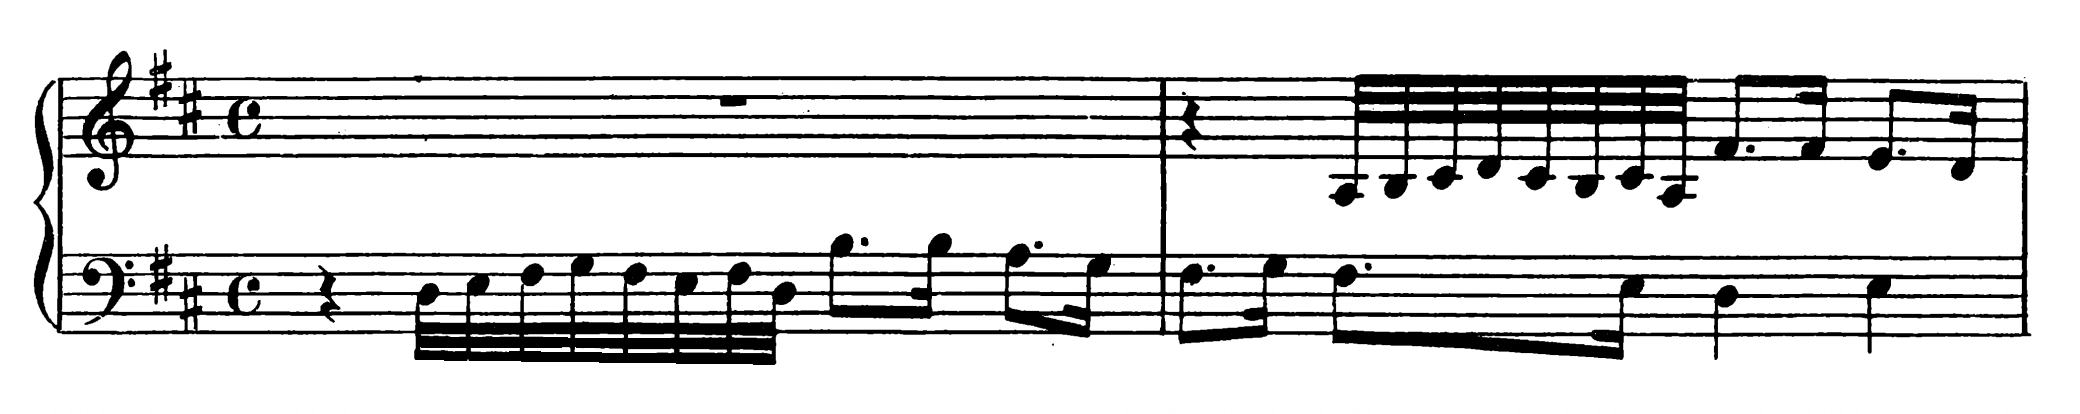 bach fugue analysis